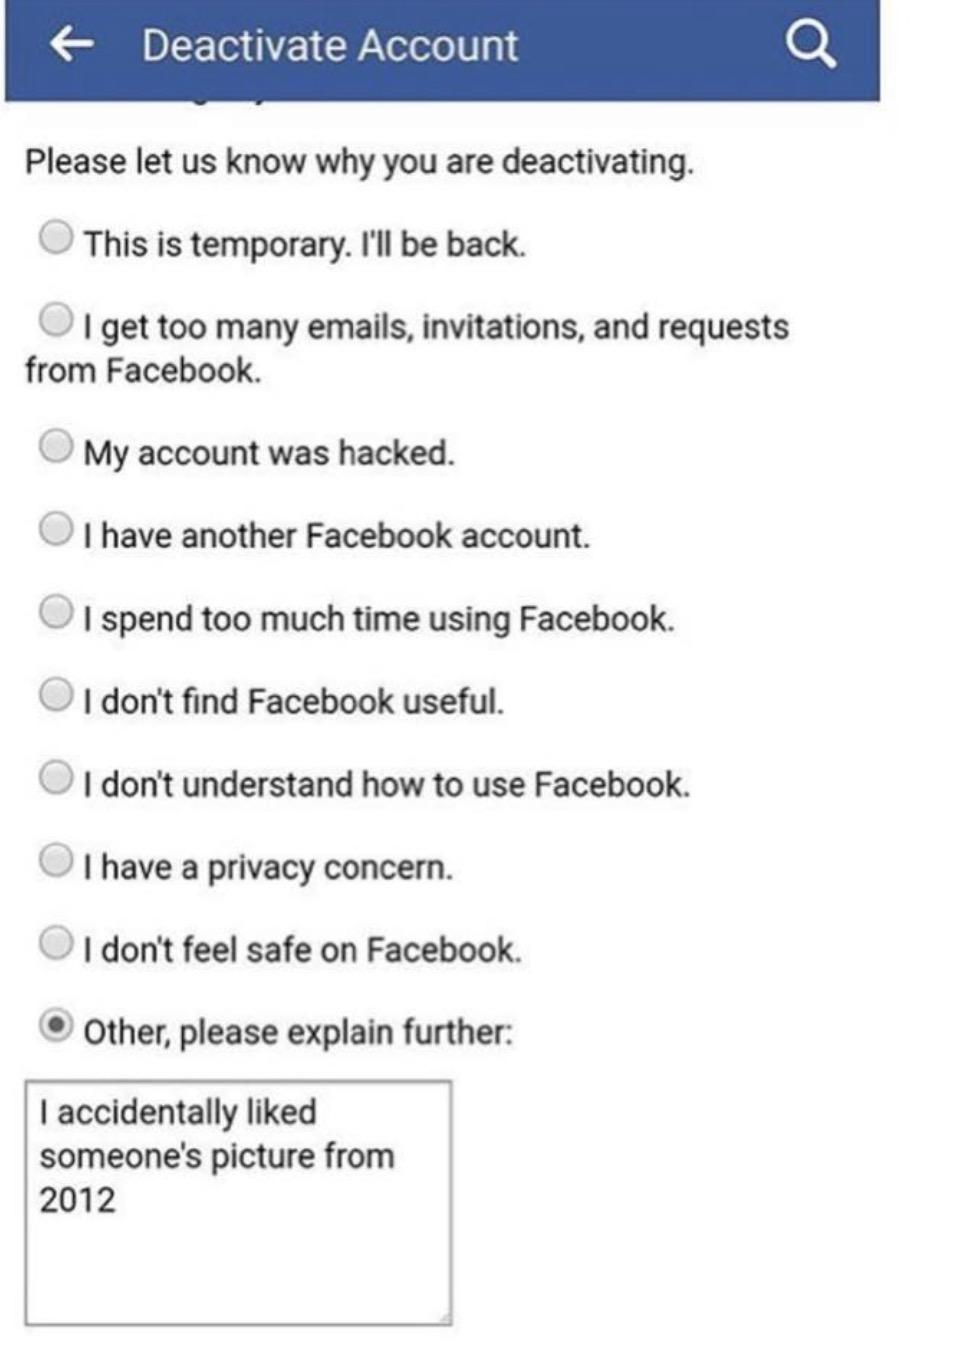 funny pics, lol pics, valid reason, facebook deactivate, facebook jokes